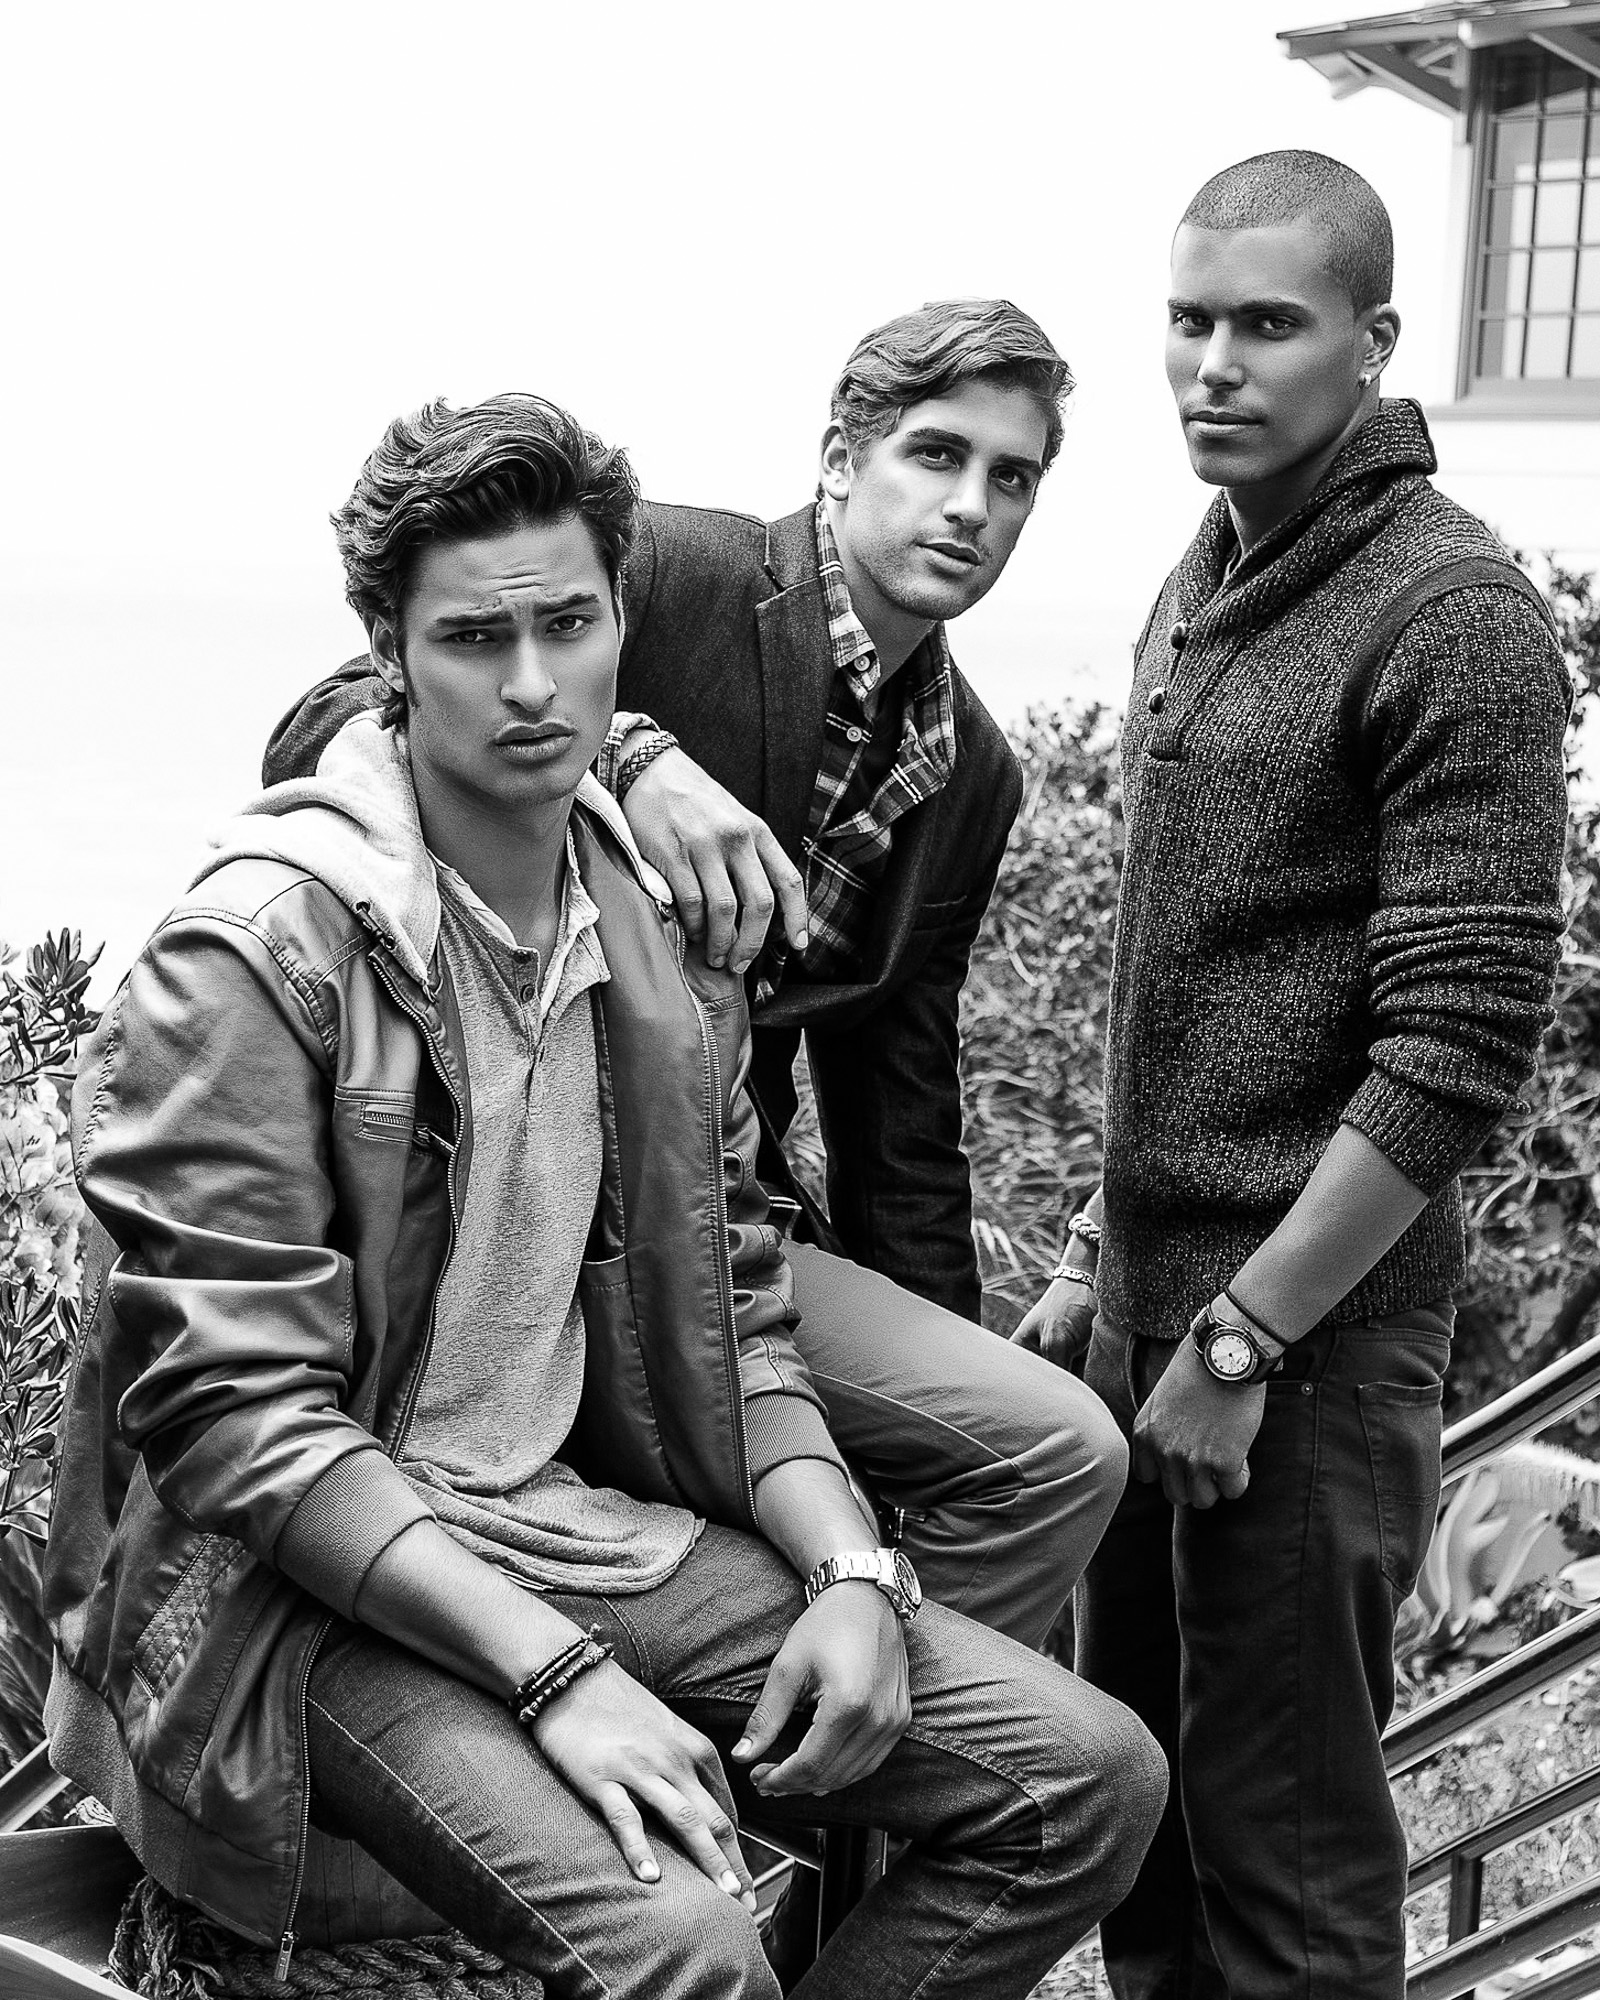 This was from the day when we had three boys hanging out and having lunch at Maro Wood Grill panorama. After the panorama shoot, we walked over to the beach to make some fashion shots. I have been trying to add shots with multiple models to my fashion portfolio. In 2014, you will see more and more images with multiple models in them.